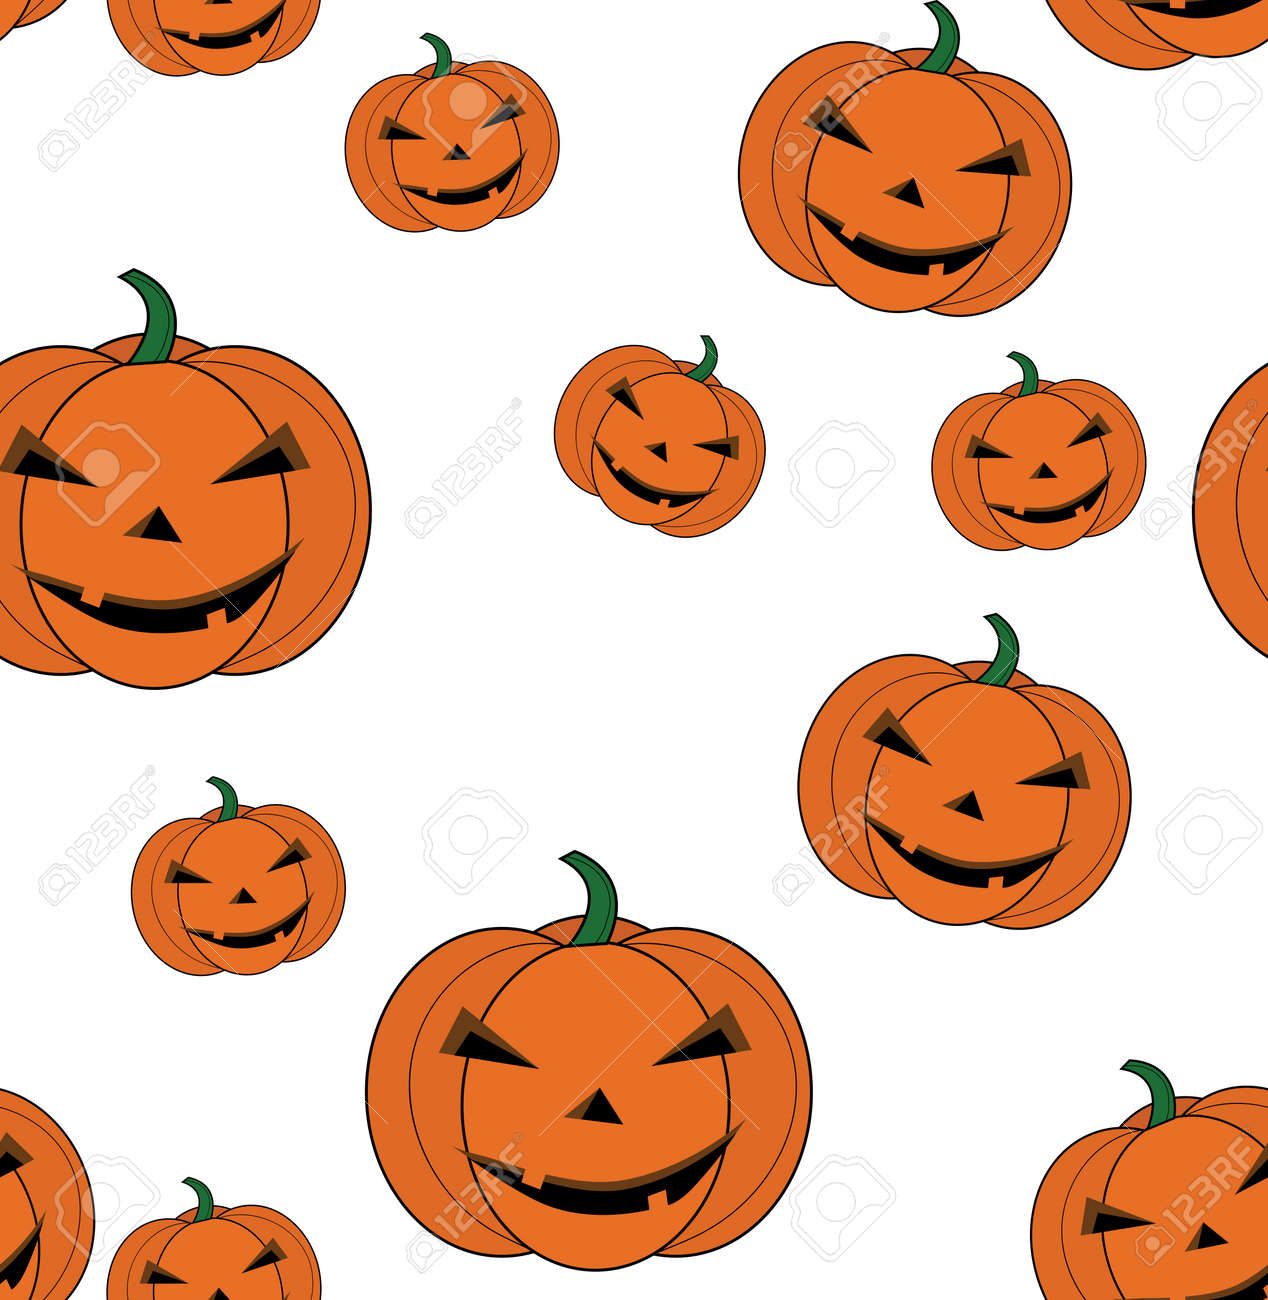 Seamless Pattern Pumpkin Cartoon For Halloween Card Wallpaper Royalty Free Cliparts Vectors And Stock Illustration Image 65042878